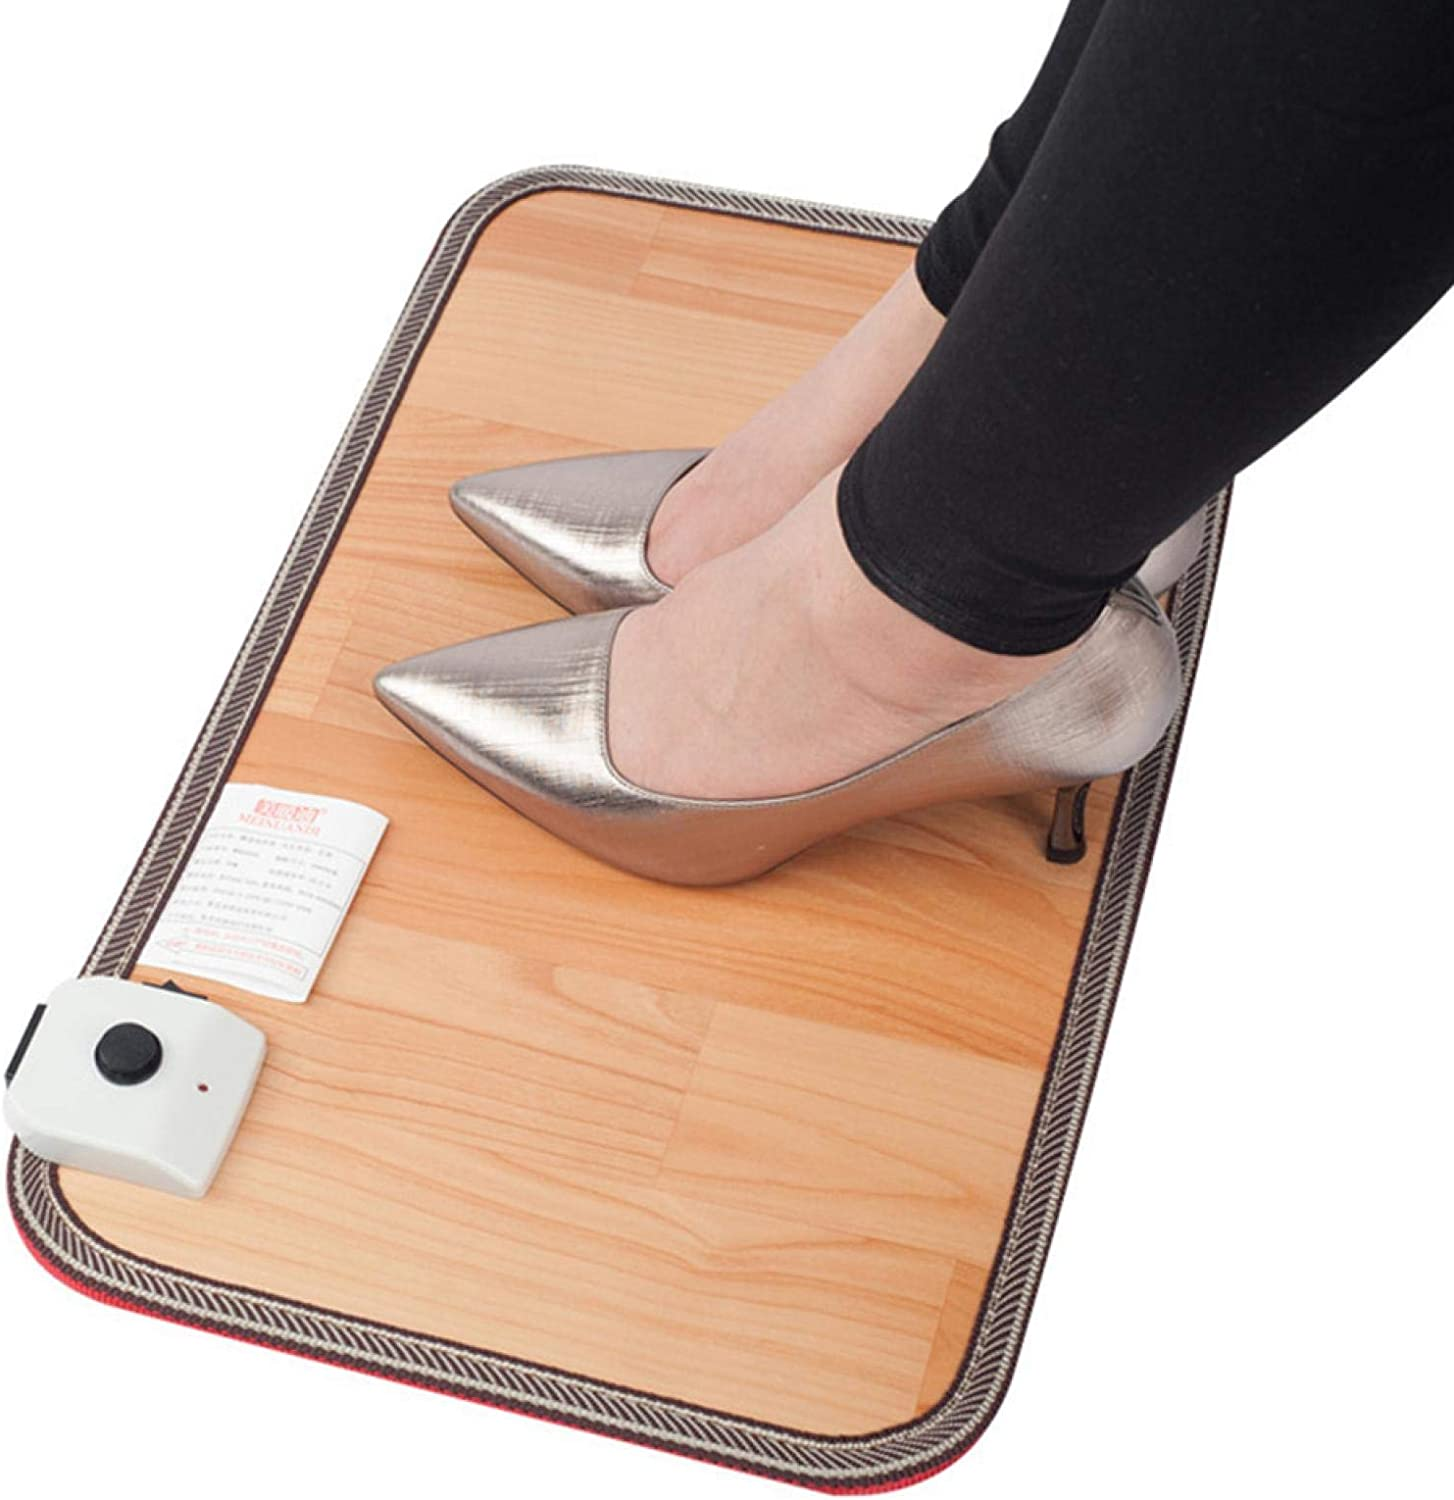 JIANWEI Electric Heated Foot Floor Mats, Carbon Crystal Heating Pad Heated Foot Warmer for Office and Home, 5030cm